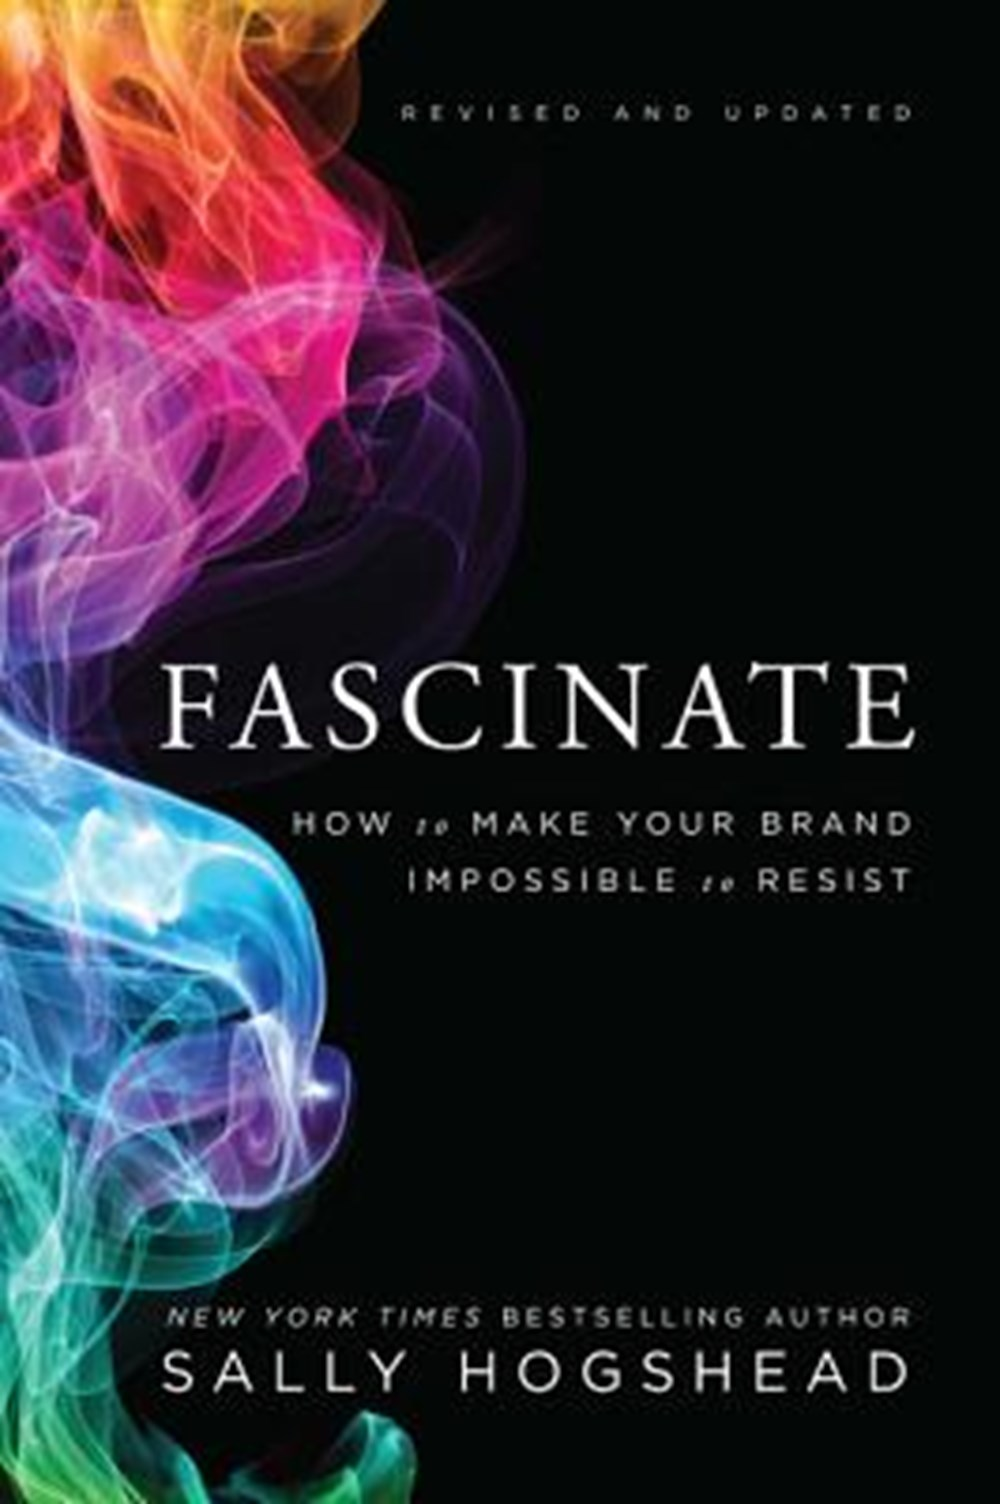 Fascinate, Revised and Updated How to Make Your Brand Impossible to Resist